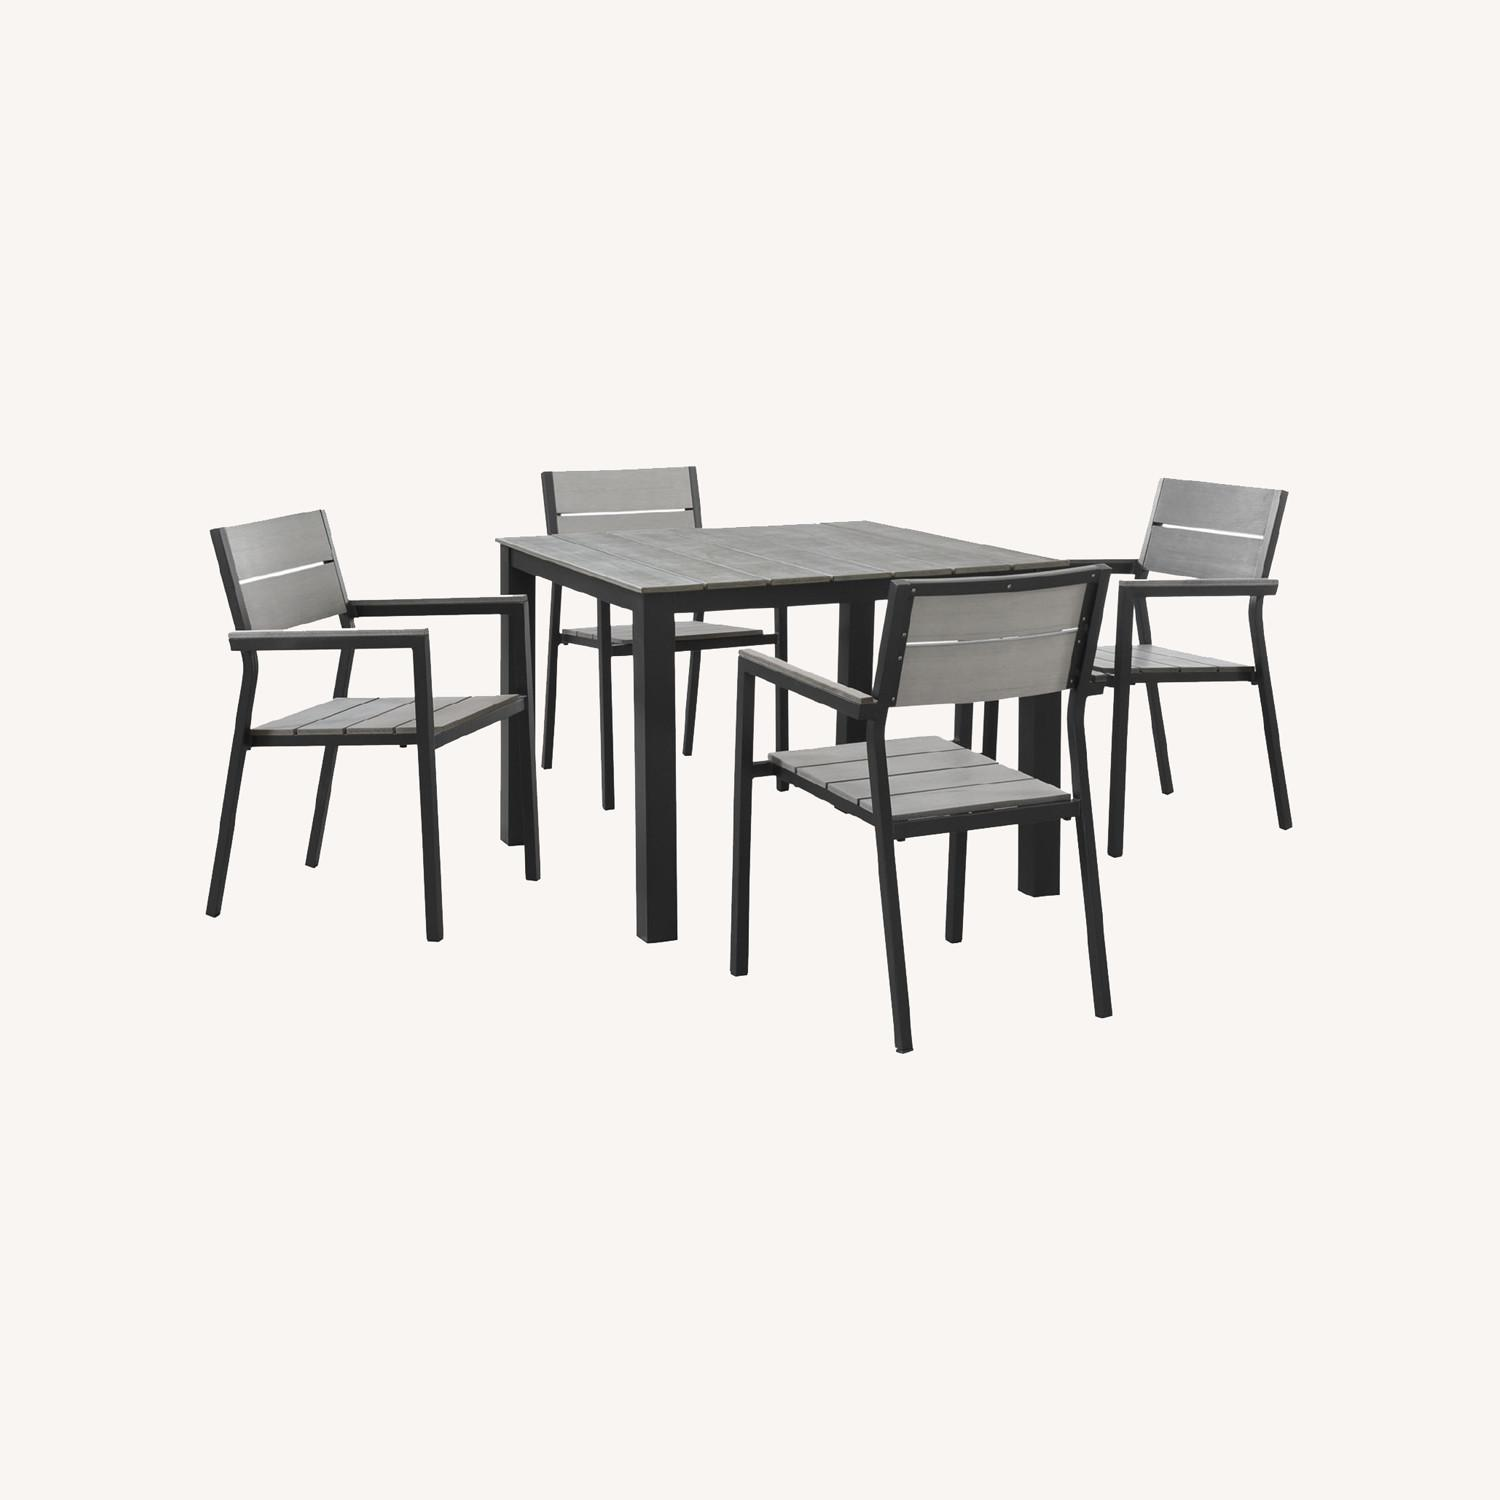 Modern 5-Piece Dining Set In Gray Frame Finish - image-7